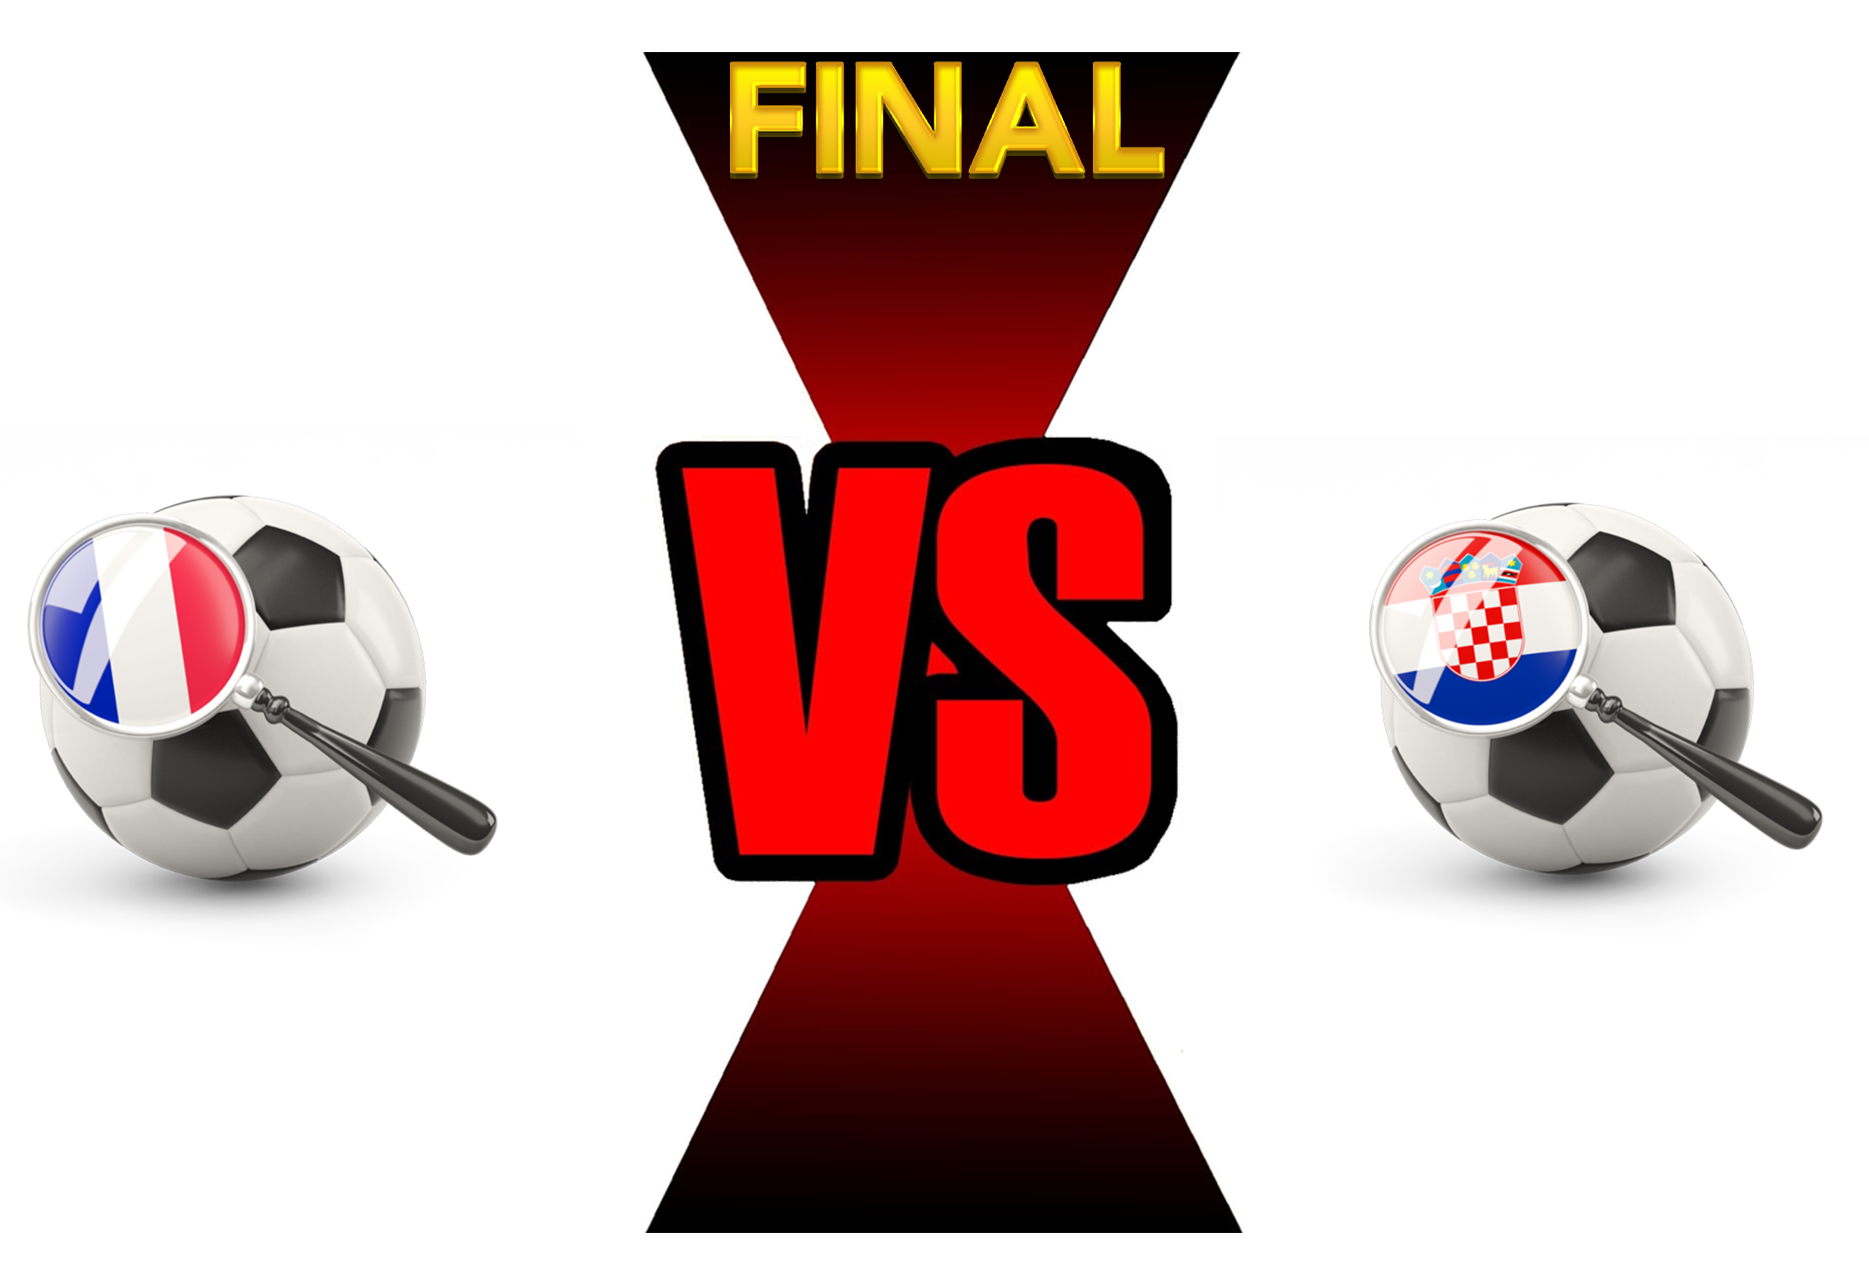 FIFA World Cup 2018 Final Match France VS Croatia PNG Image SVG Clip arts